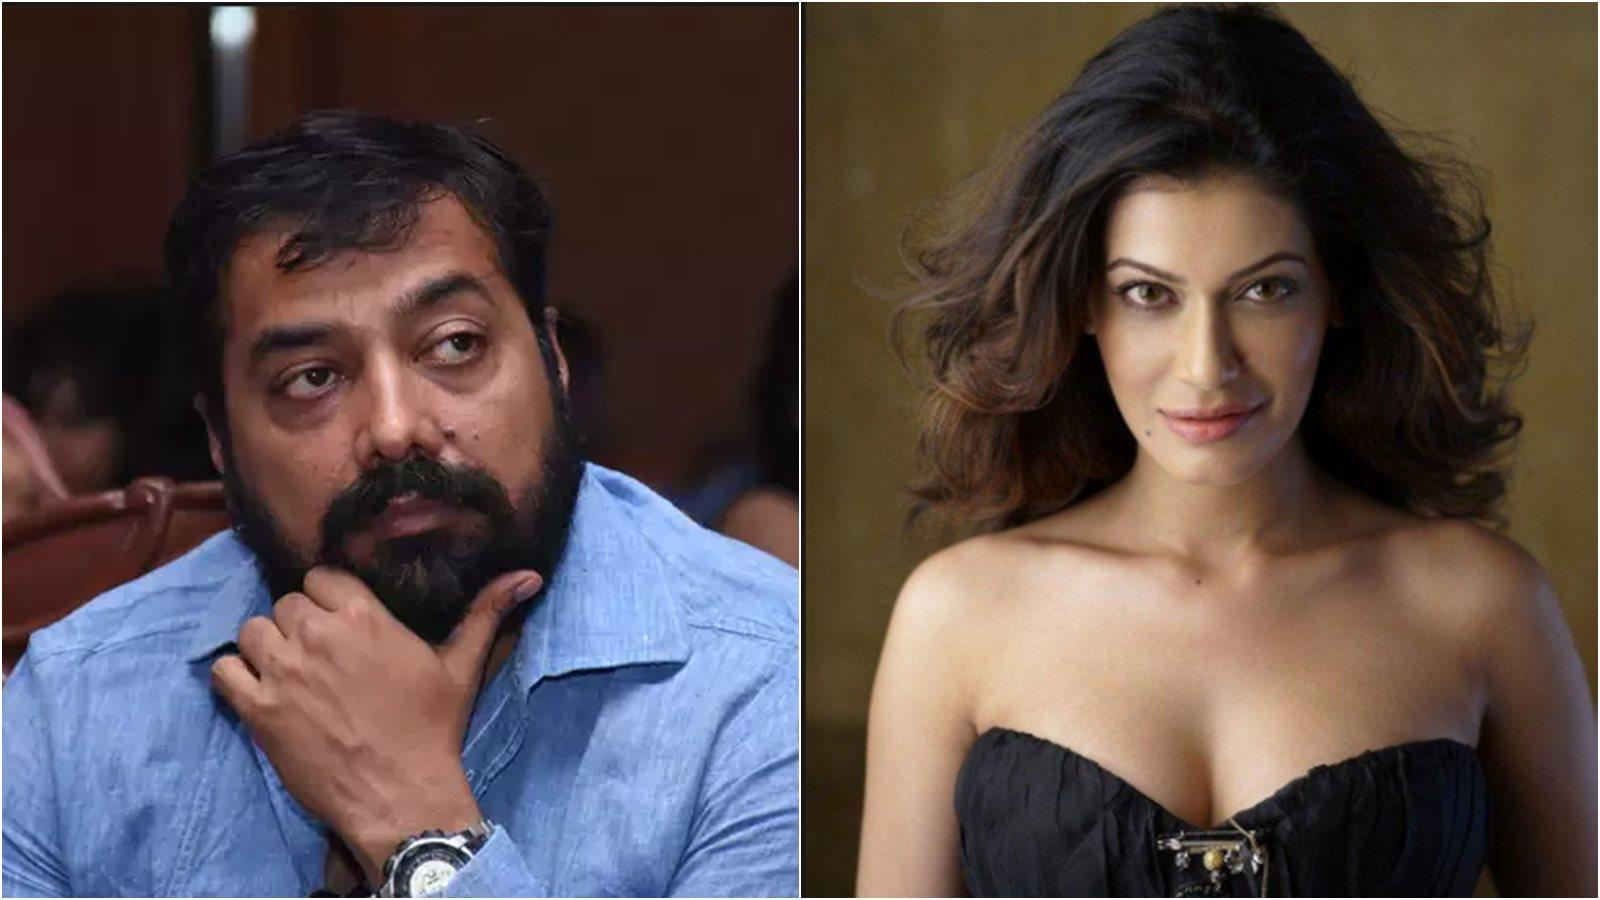 Payal Rohatgi asks filmmaker Anurag Kashyap to 'refrain from alcohol', tells him 'not to be ashamed to take mental help'